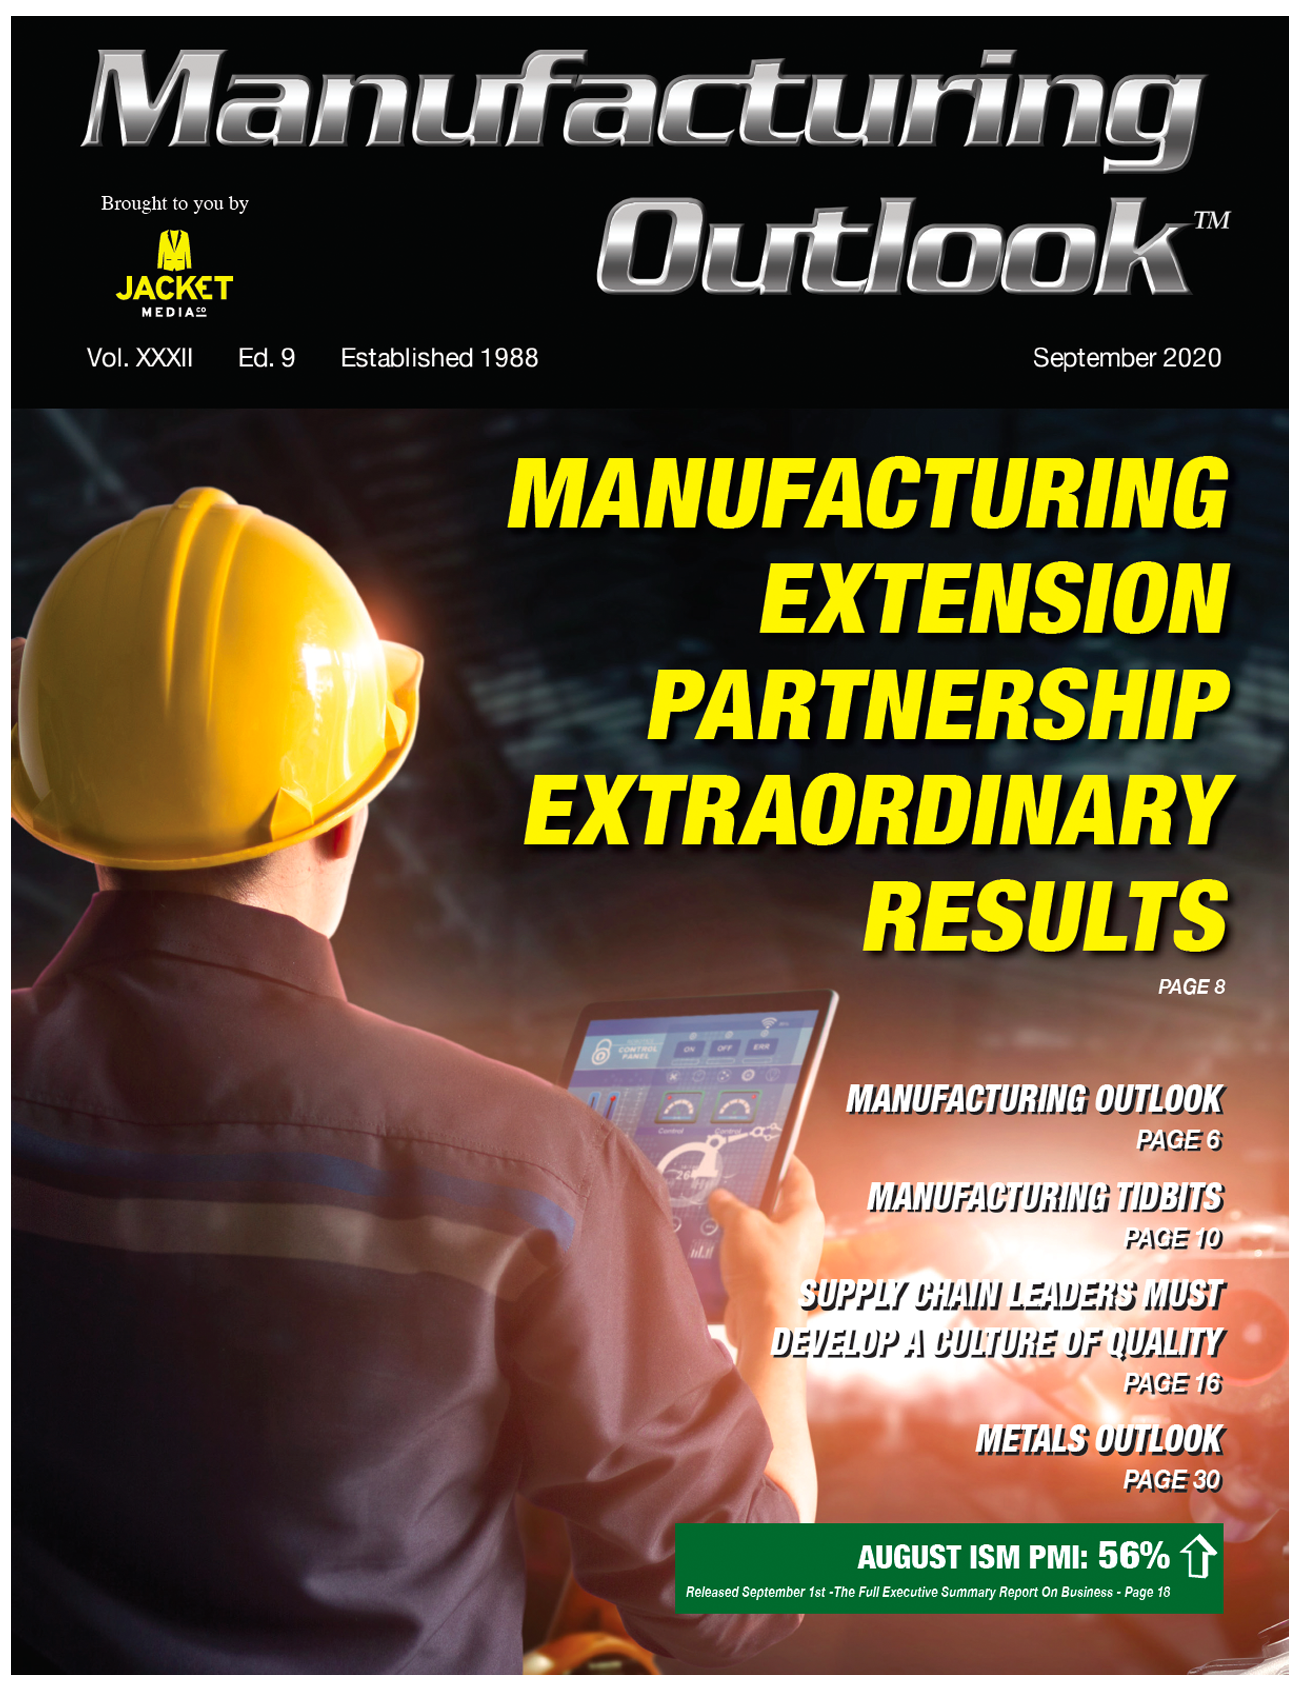 Manufacturing Outlook sept 2020